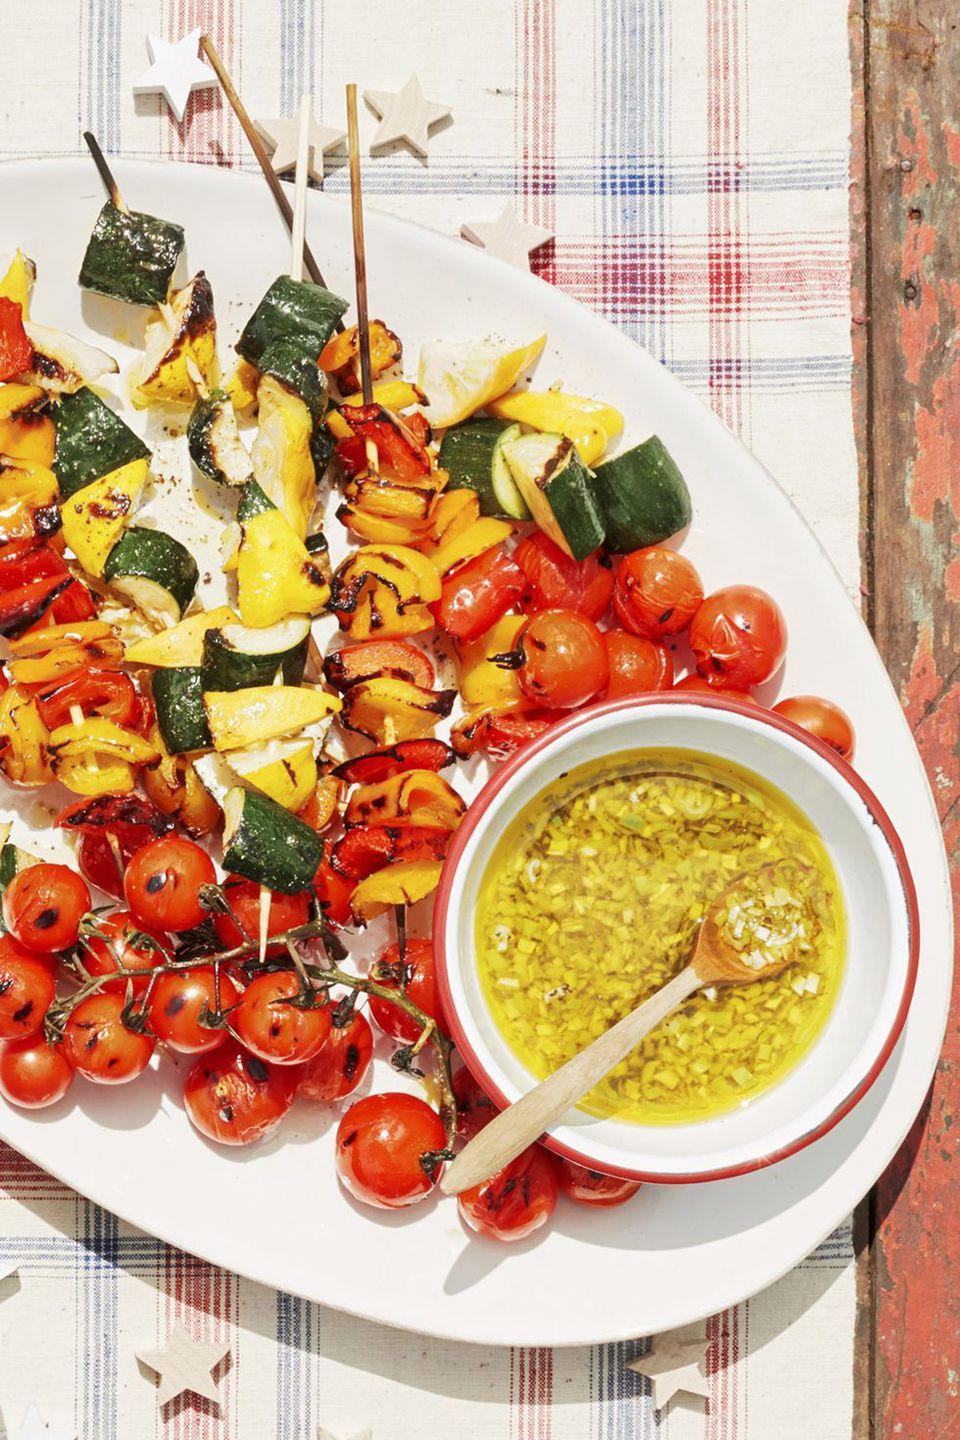 """<p>Present these charred veggies and watch everyone fill up their plates. Not only are they healthy, but they're also super tasty.<br></p><p><strong><a href=""""https://www.countryliving.com/food-drinks/a21347703/vegetable-kebabs-with-lemon-scallion-vinaigrette-recipe/"""" rel=""""nofollow noopener"""" target=""""_blank"""" data-ylk=""""slk:Get the recipe"""" class=""""link rapid-noclick-resp"""">Get the recipe</a>.</strong> </p>"""